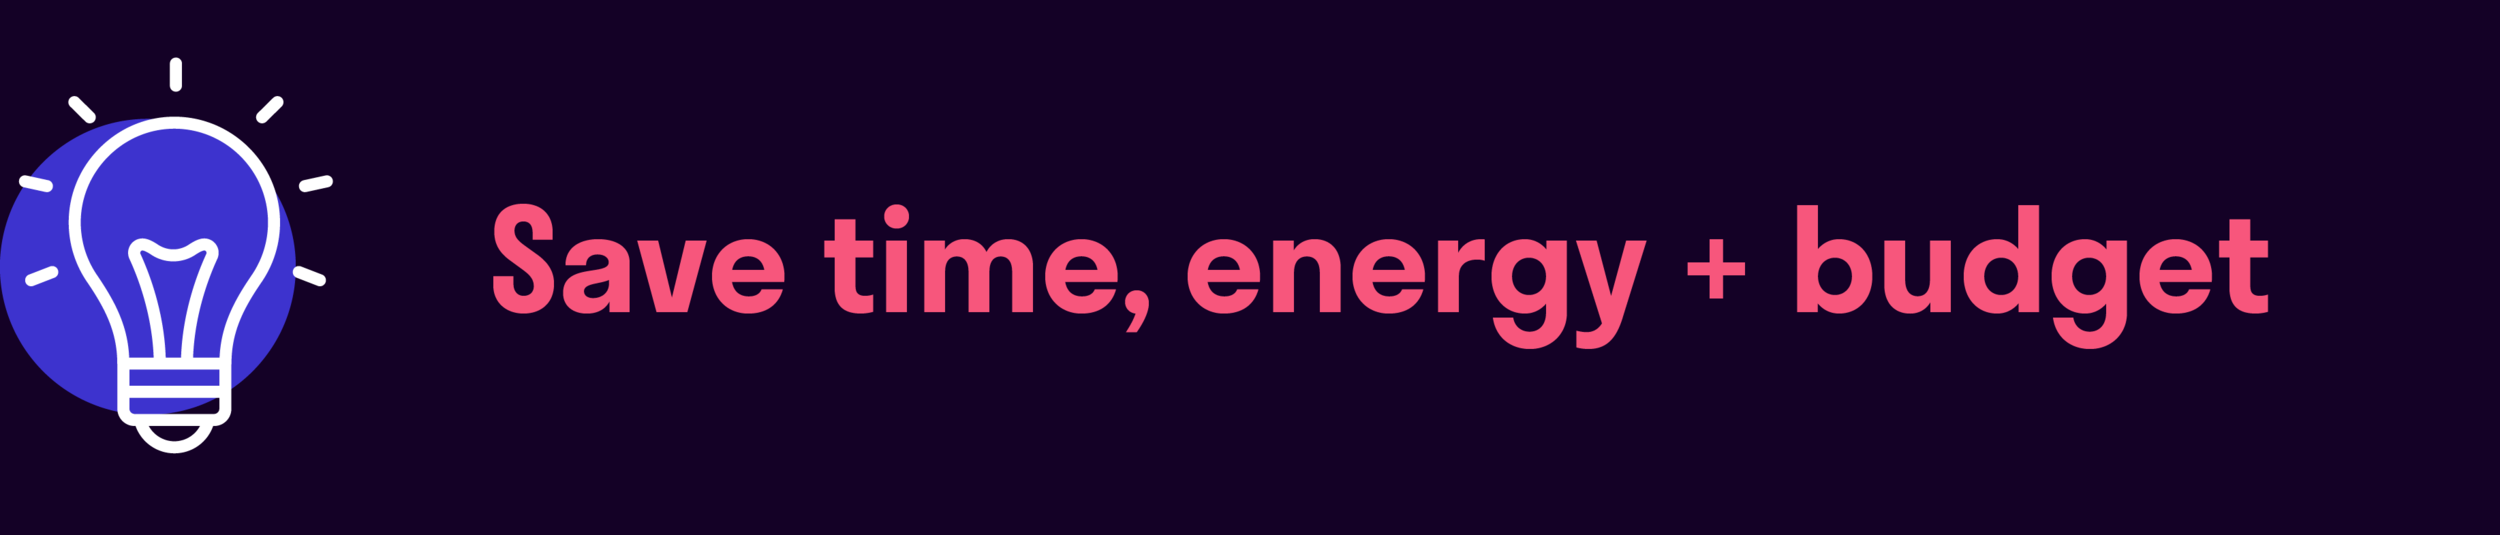 Save time energy and budget.png